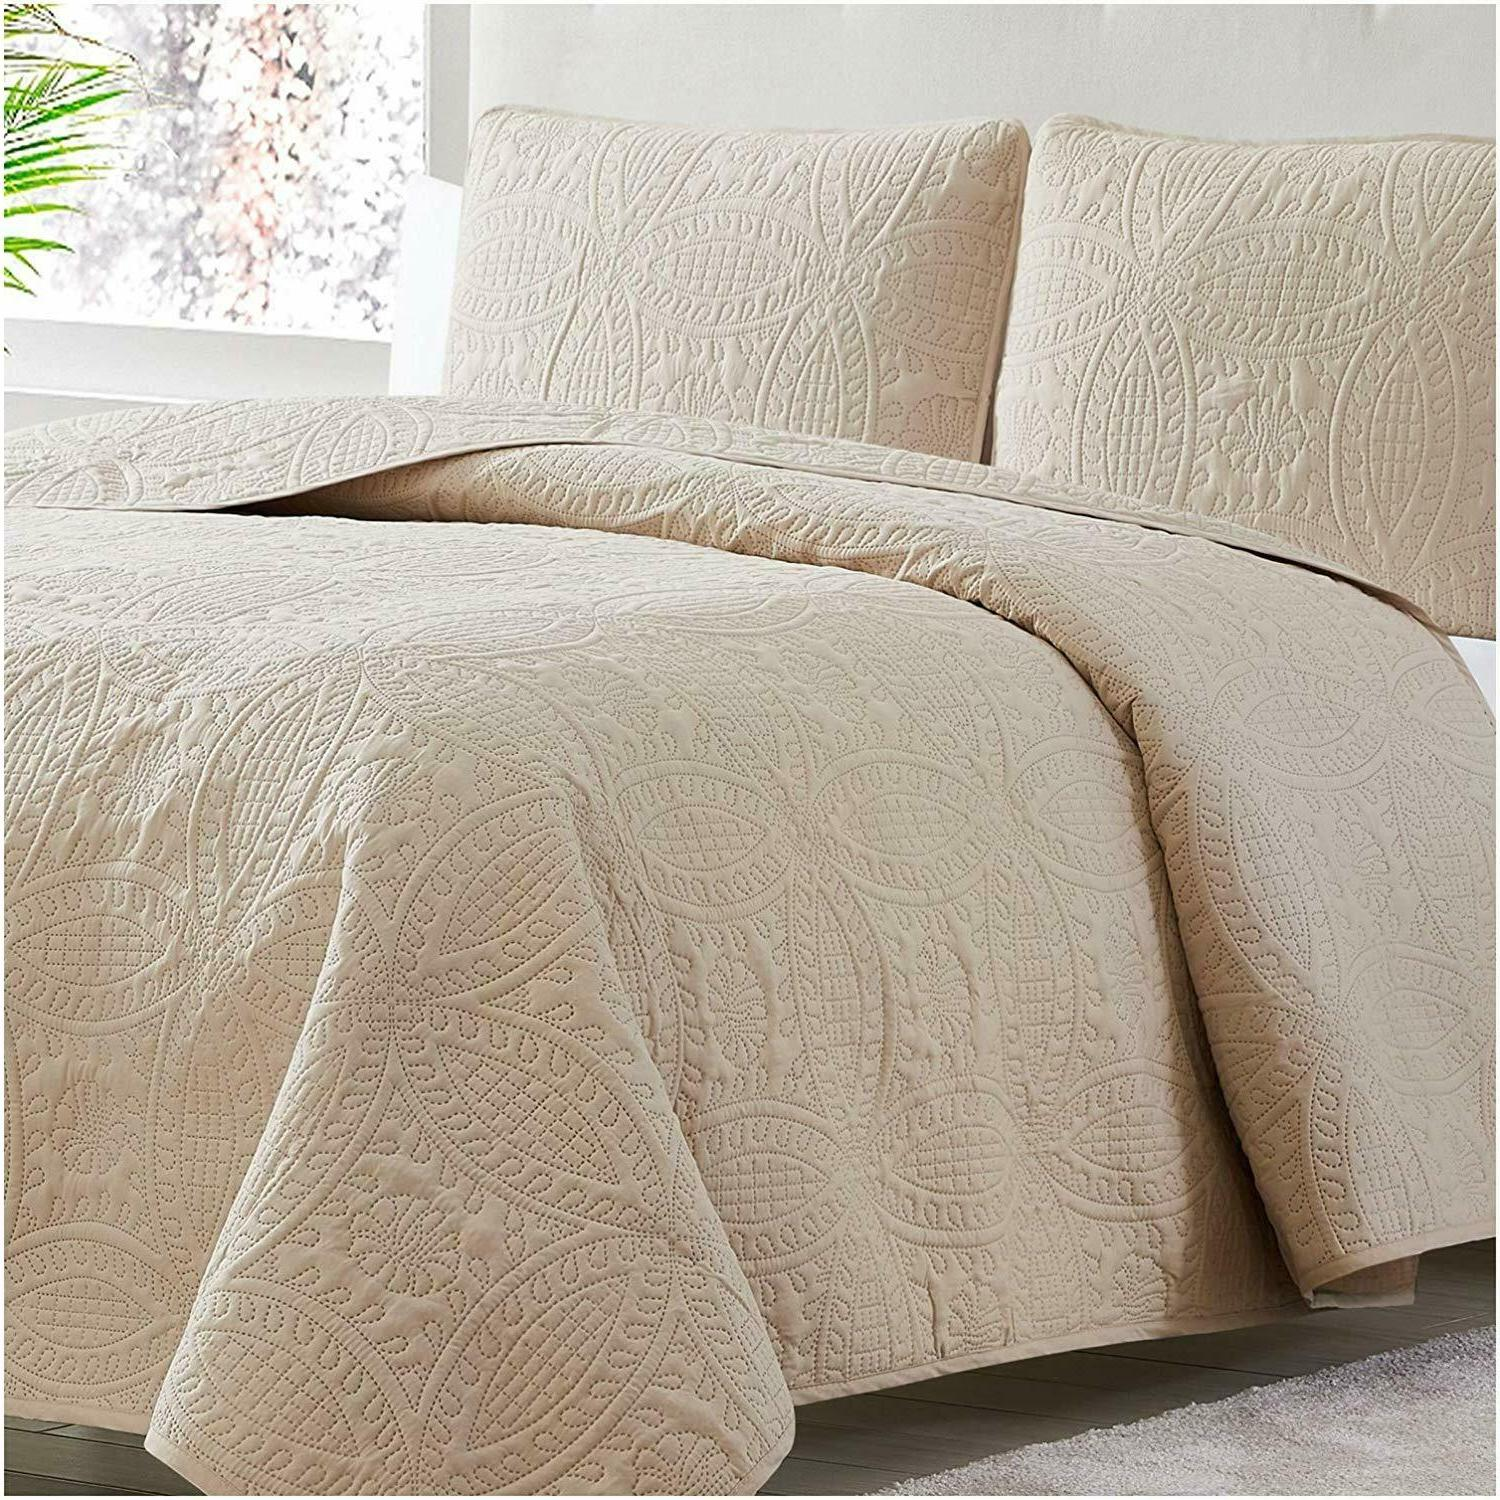 Mellanni Coverlet Set 3-Piece Bed Cover, Ultrasonic